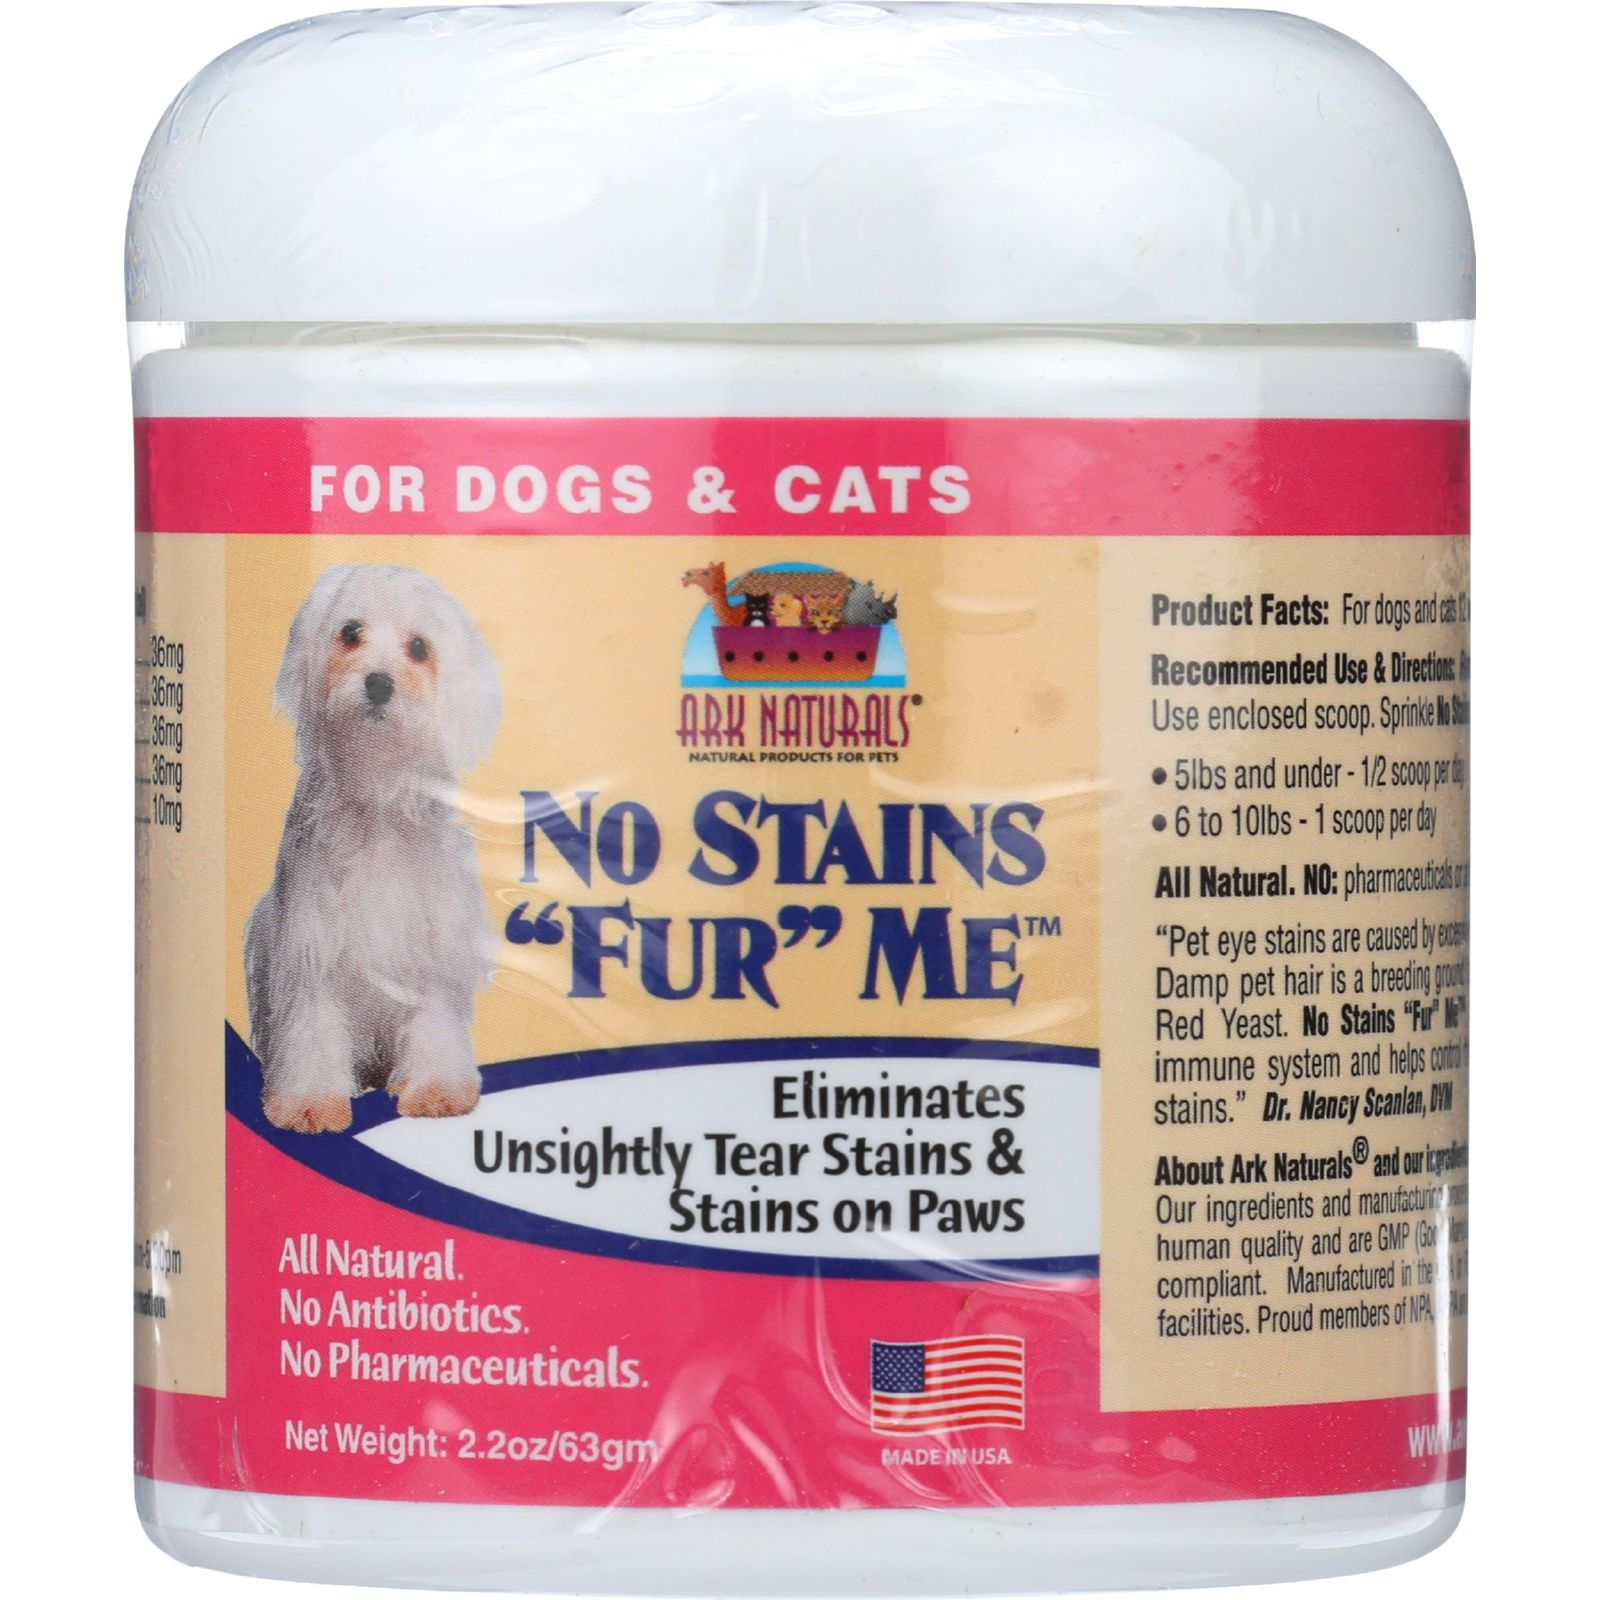 Ark Naturals No Stains Fur Me - 2.2 oz - 1 each